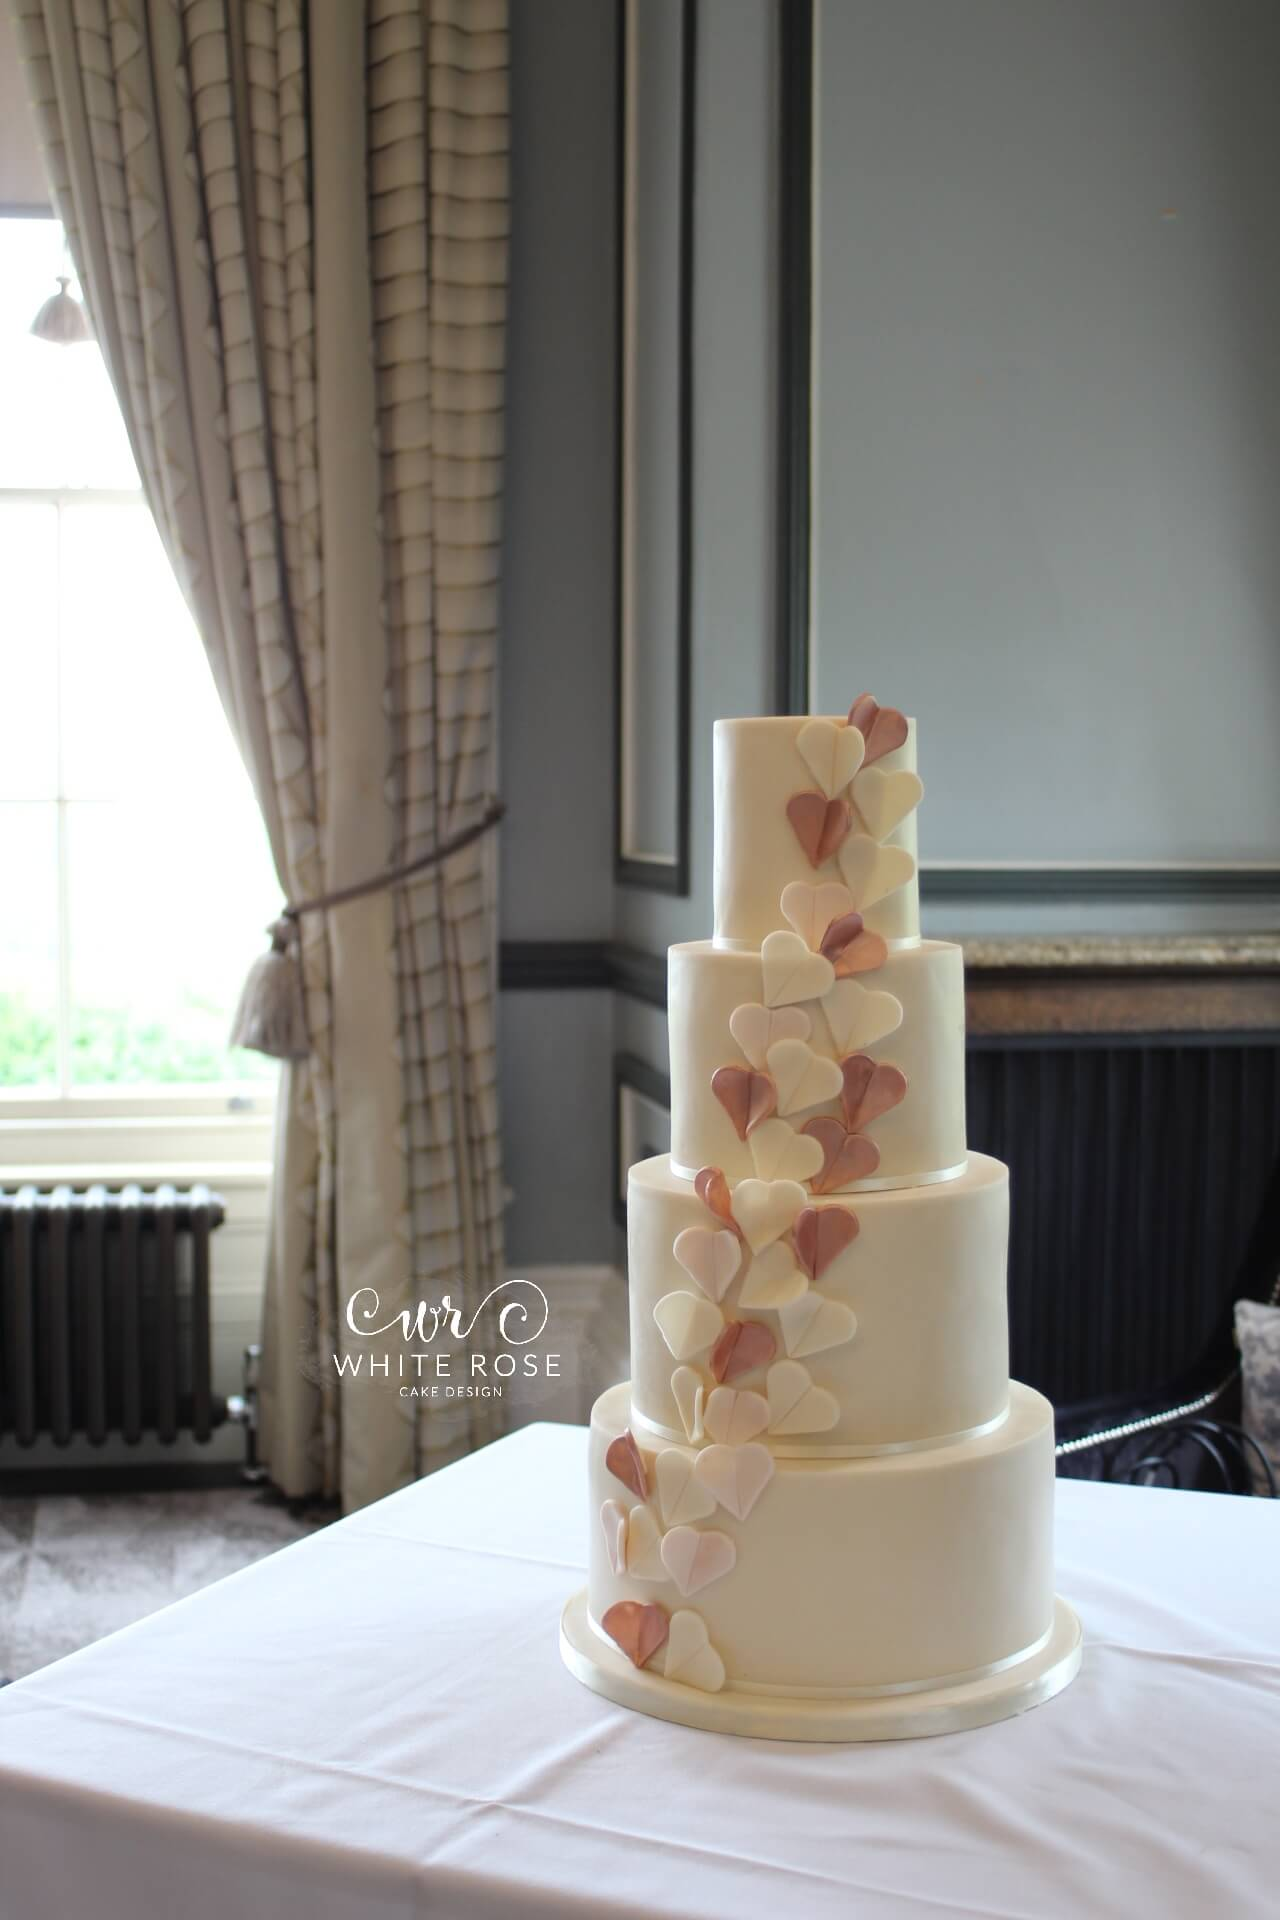 Rose Gold Folded Hearts Wedding Cake by White Rose Cake Design at Oulton Hall West Yorkshire